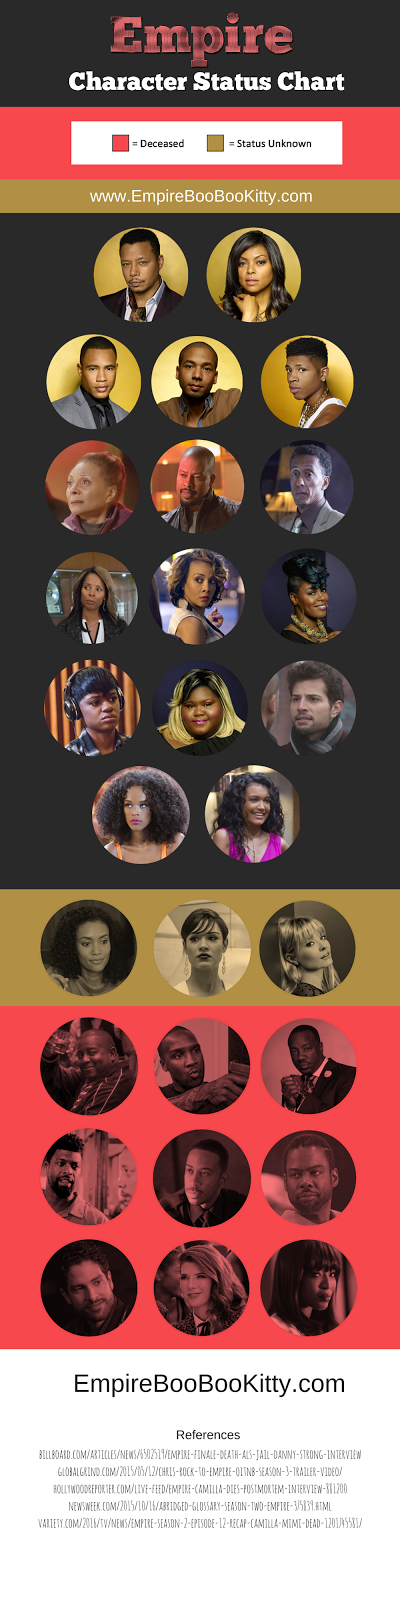 Empire Fox Character Status Infographic